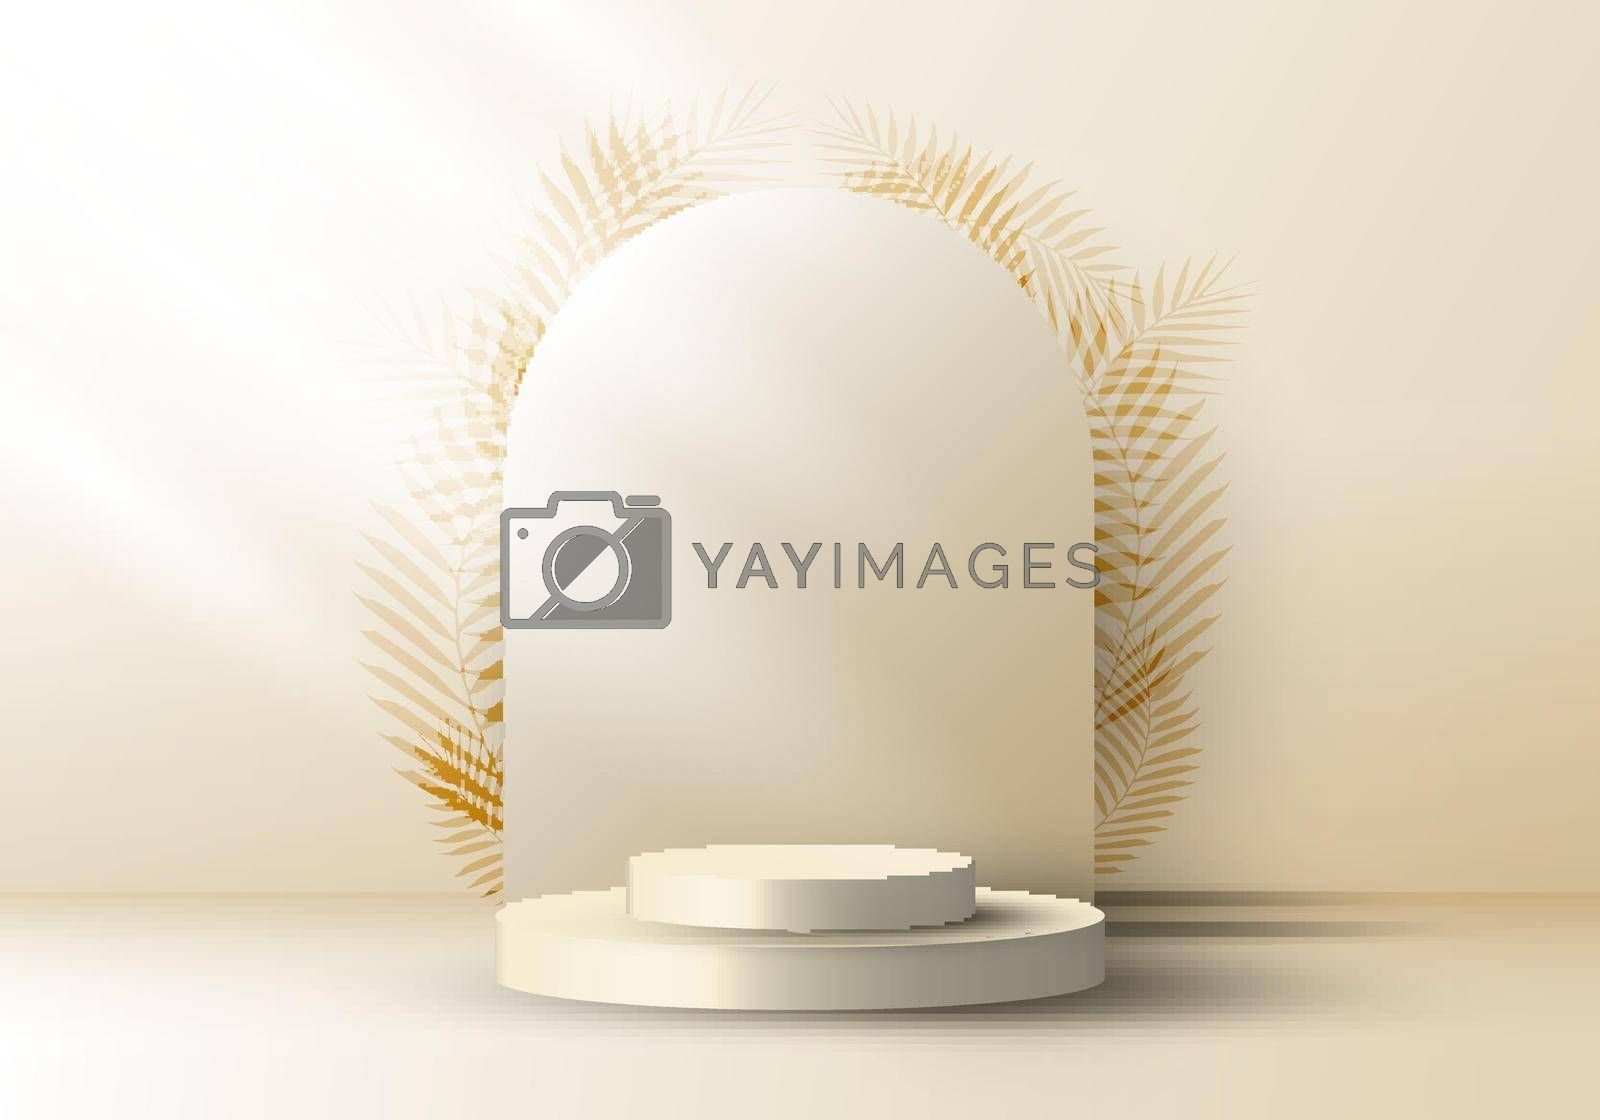 Royalty free image of 3D realistic elegant brown cylinder on layers rounded backdrop with leaves on beige background by phochi